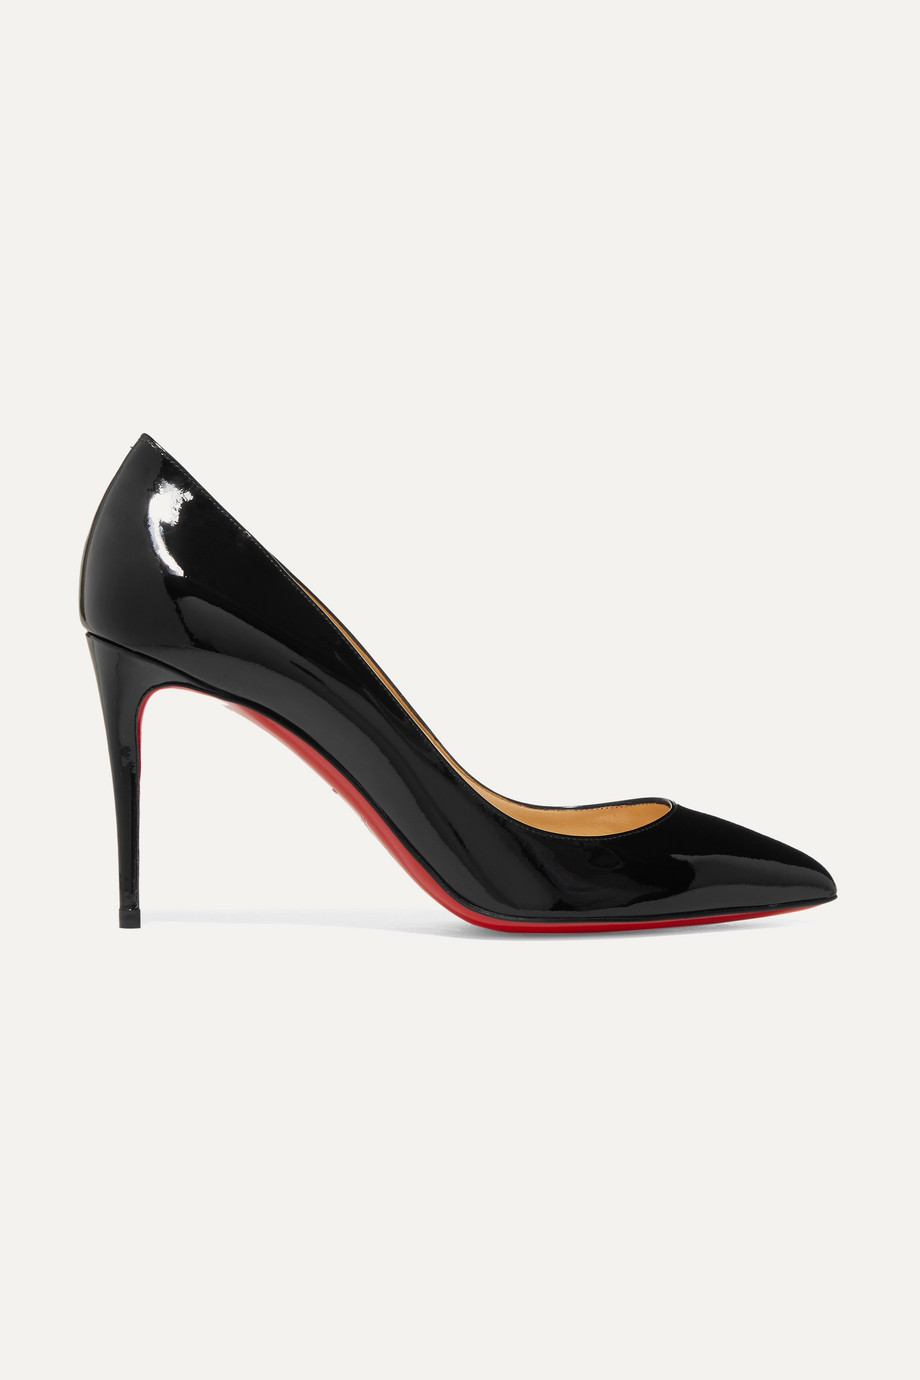 Christian Louboutin Pigalle Follies 85 patent-leather pumps